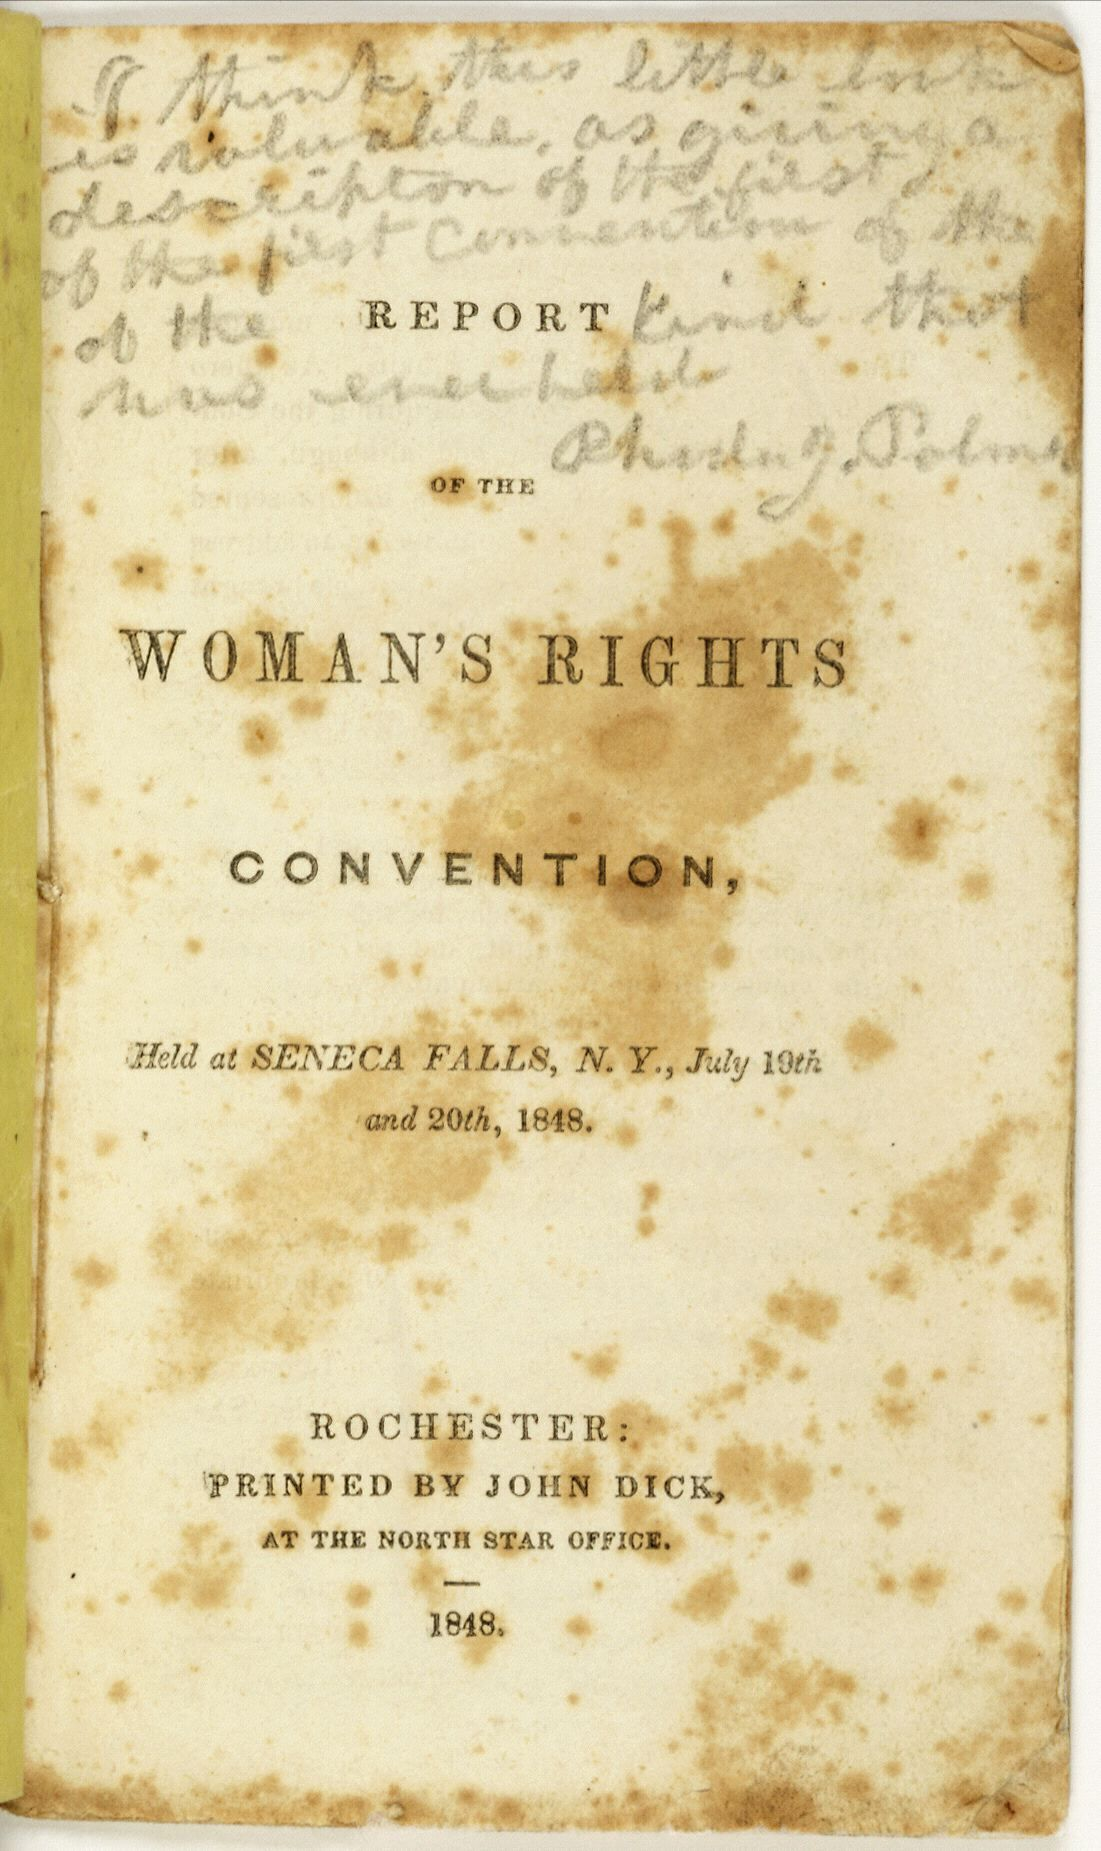 elizabeth cady stanton declaration of sentiments and resolutions elizabeth cady stanton declaration of sentiments and resolutions essay